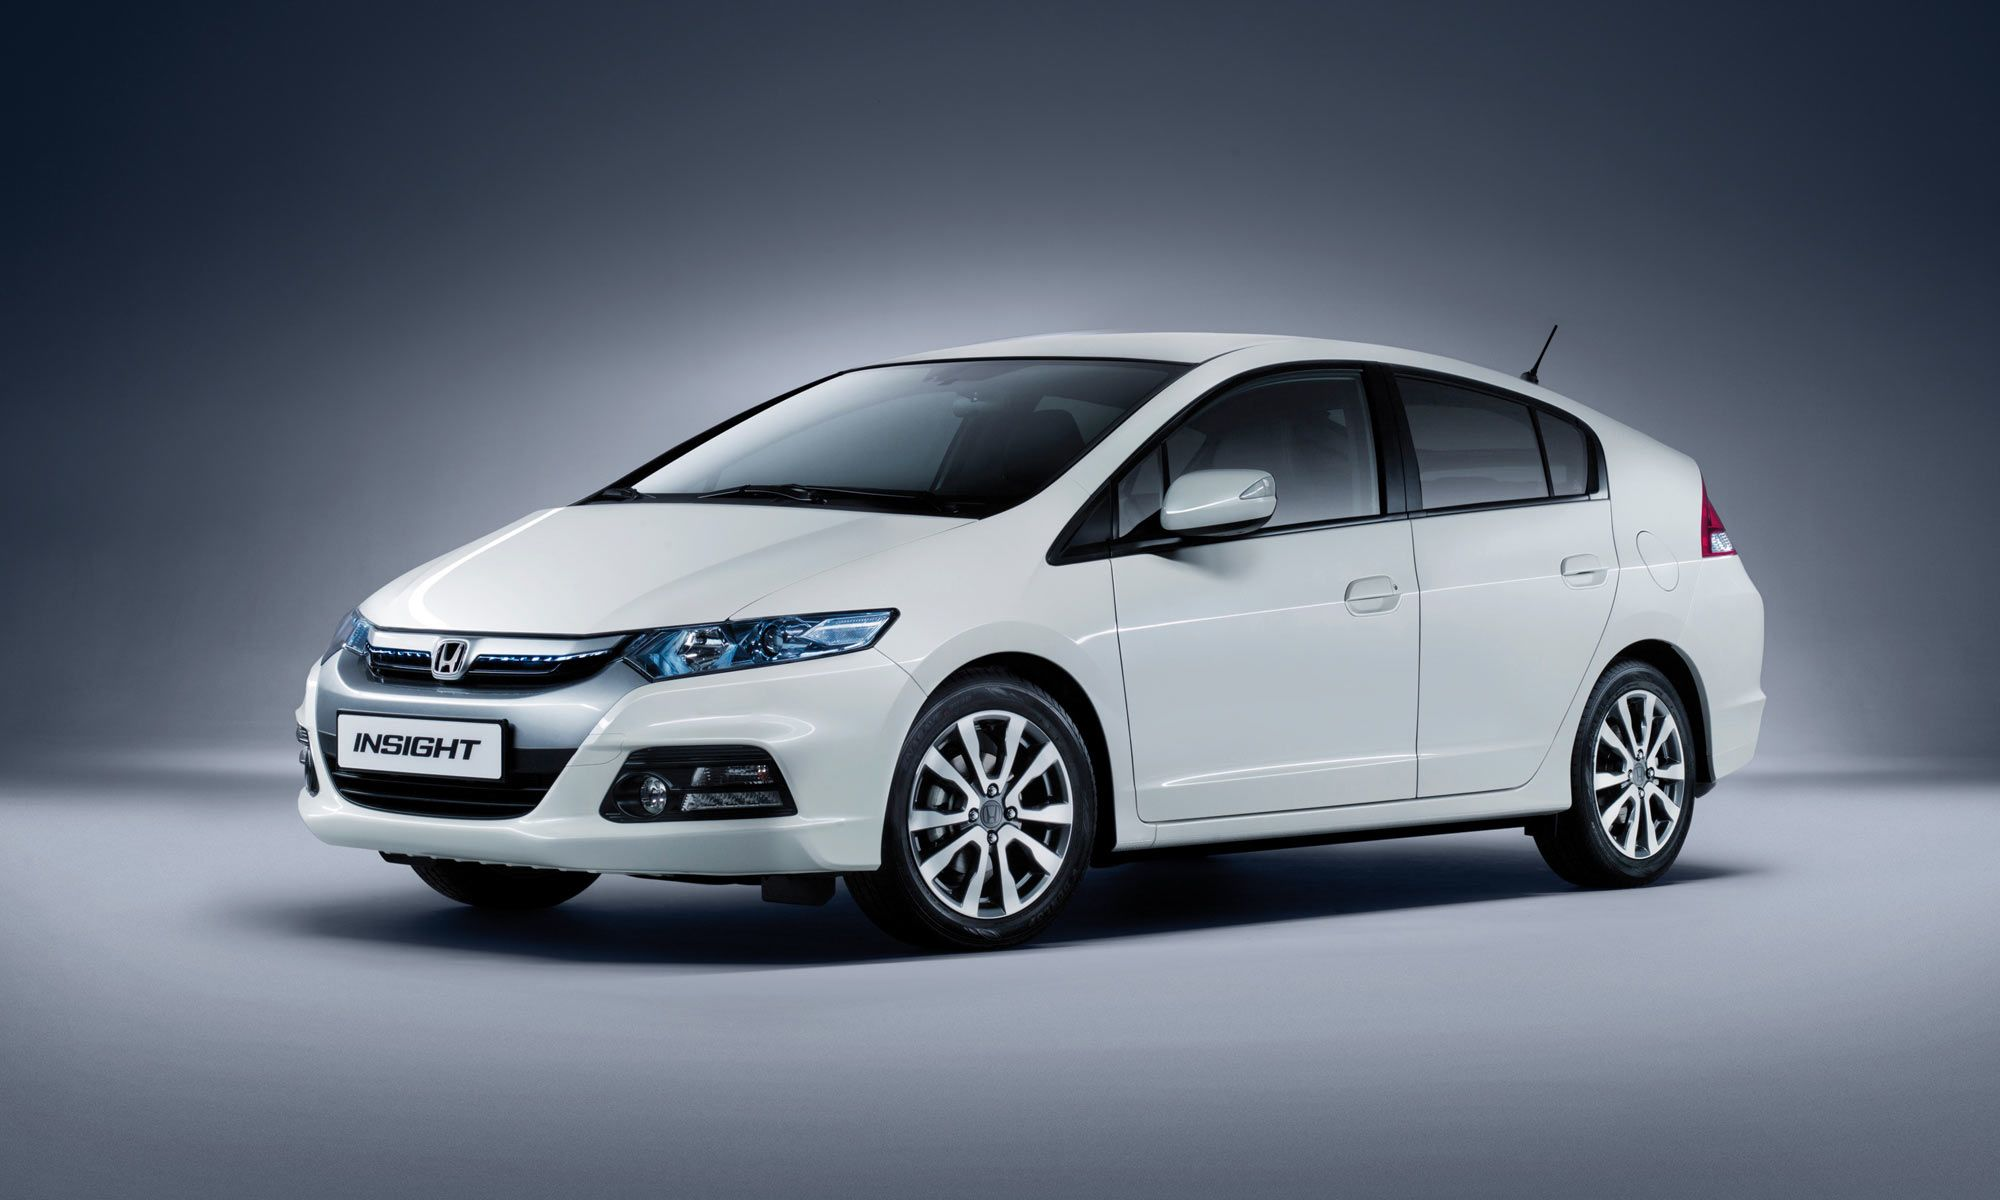 Get the new honda insight hybrid car that gives fun while driving book a test